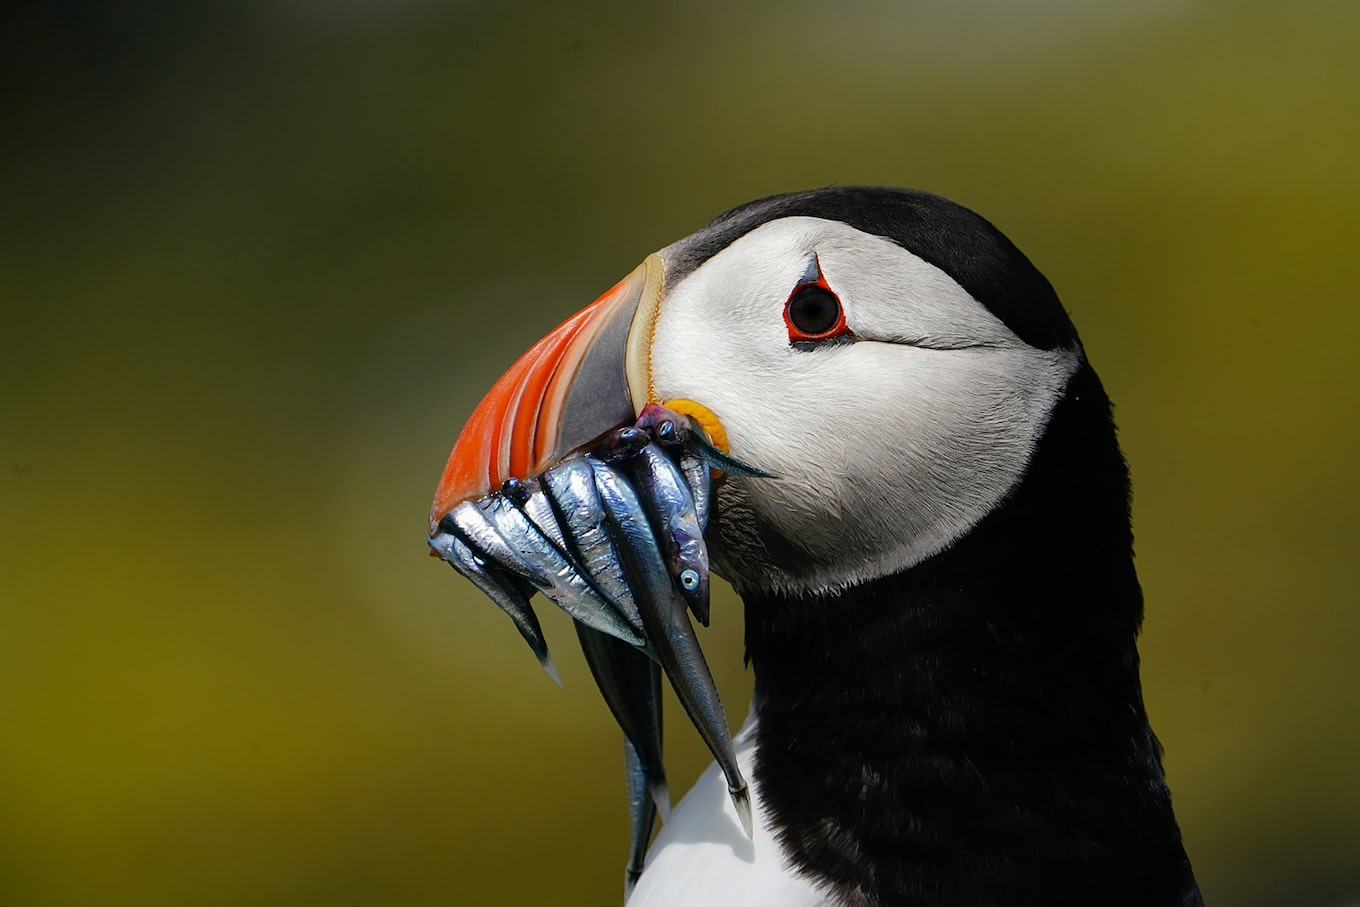 gustav-kiburg-sony-alpha-9-puffin-with-a-mouth-full-of-fish